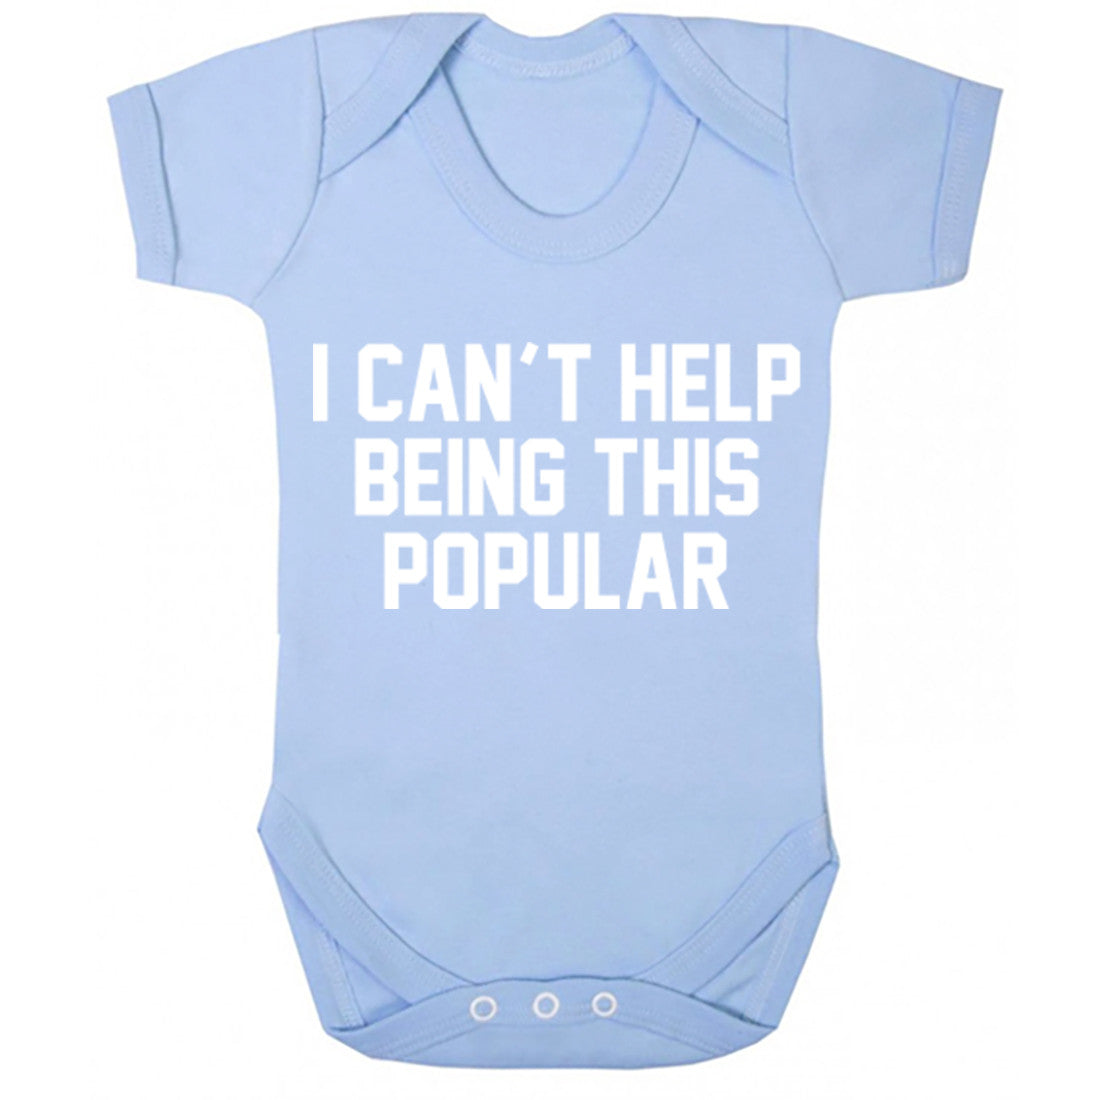 I Can't Help Being This Popular Baby Vest K0011